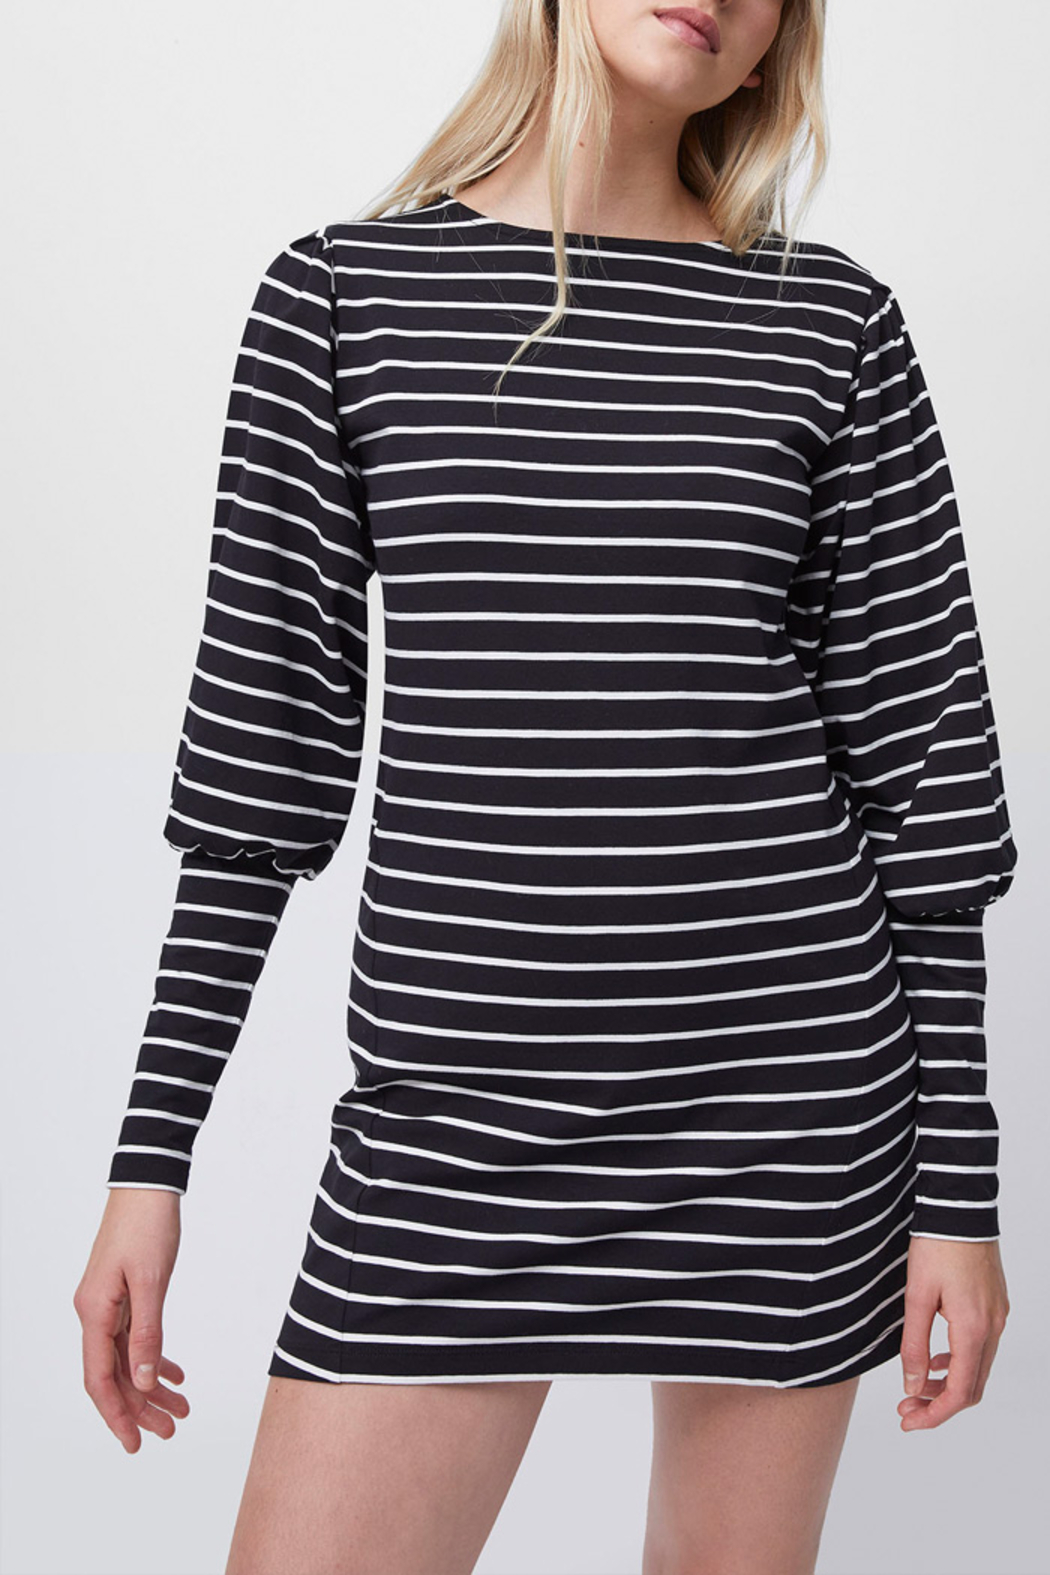 French Connection Sally Stripe Jersey Dress - Main Image